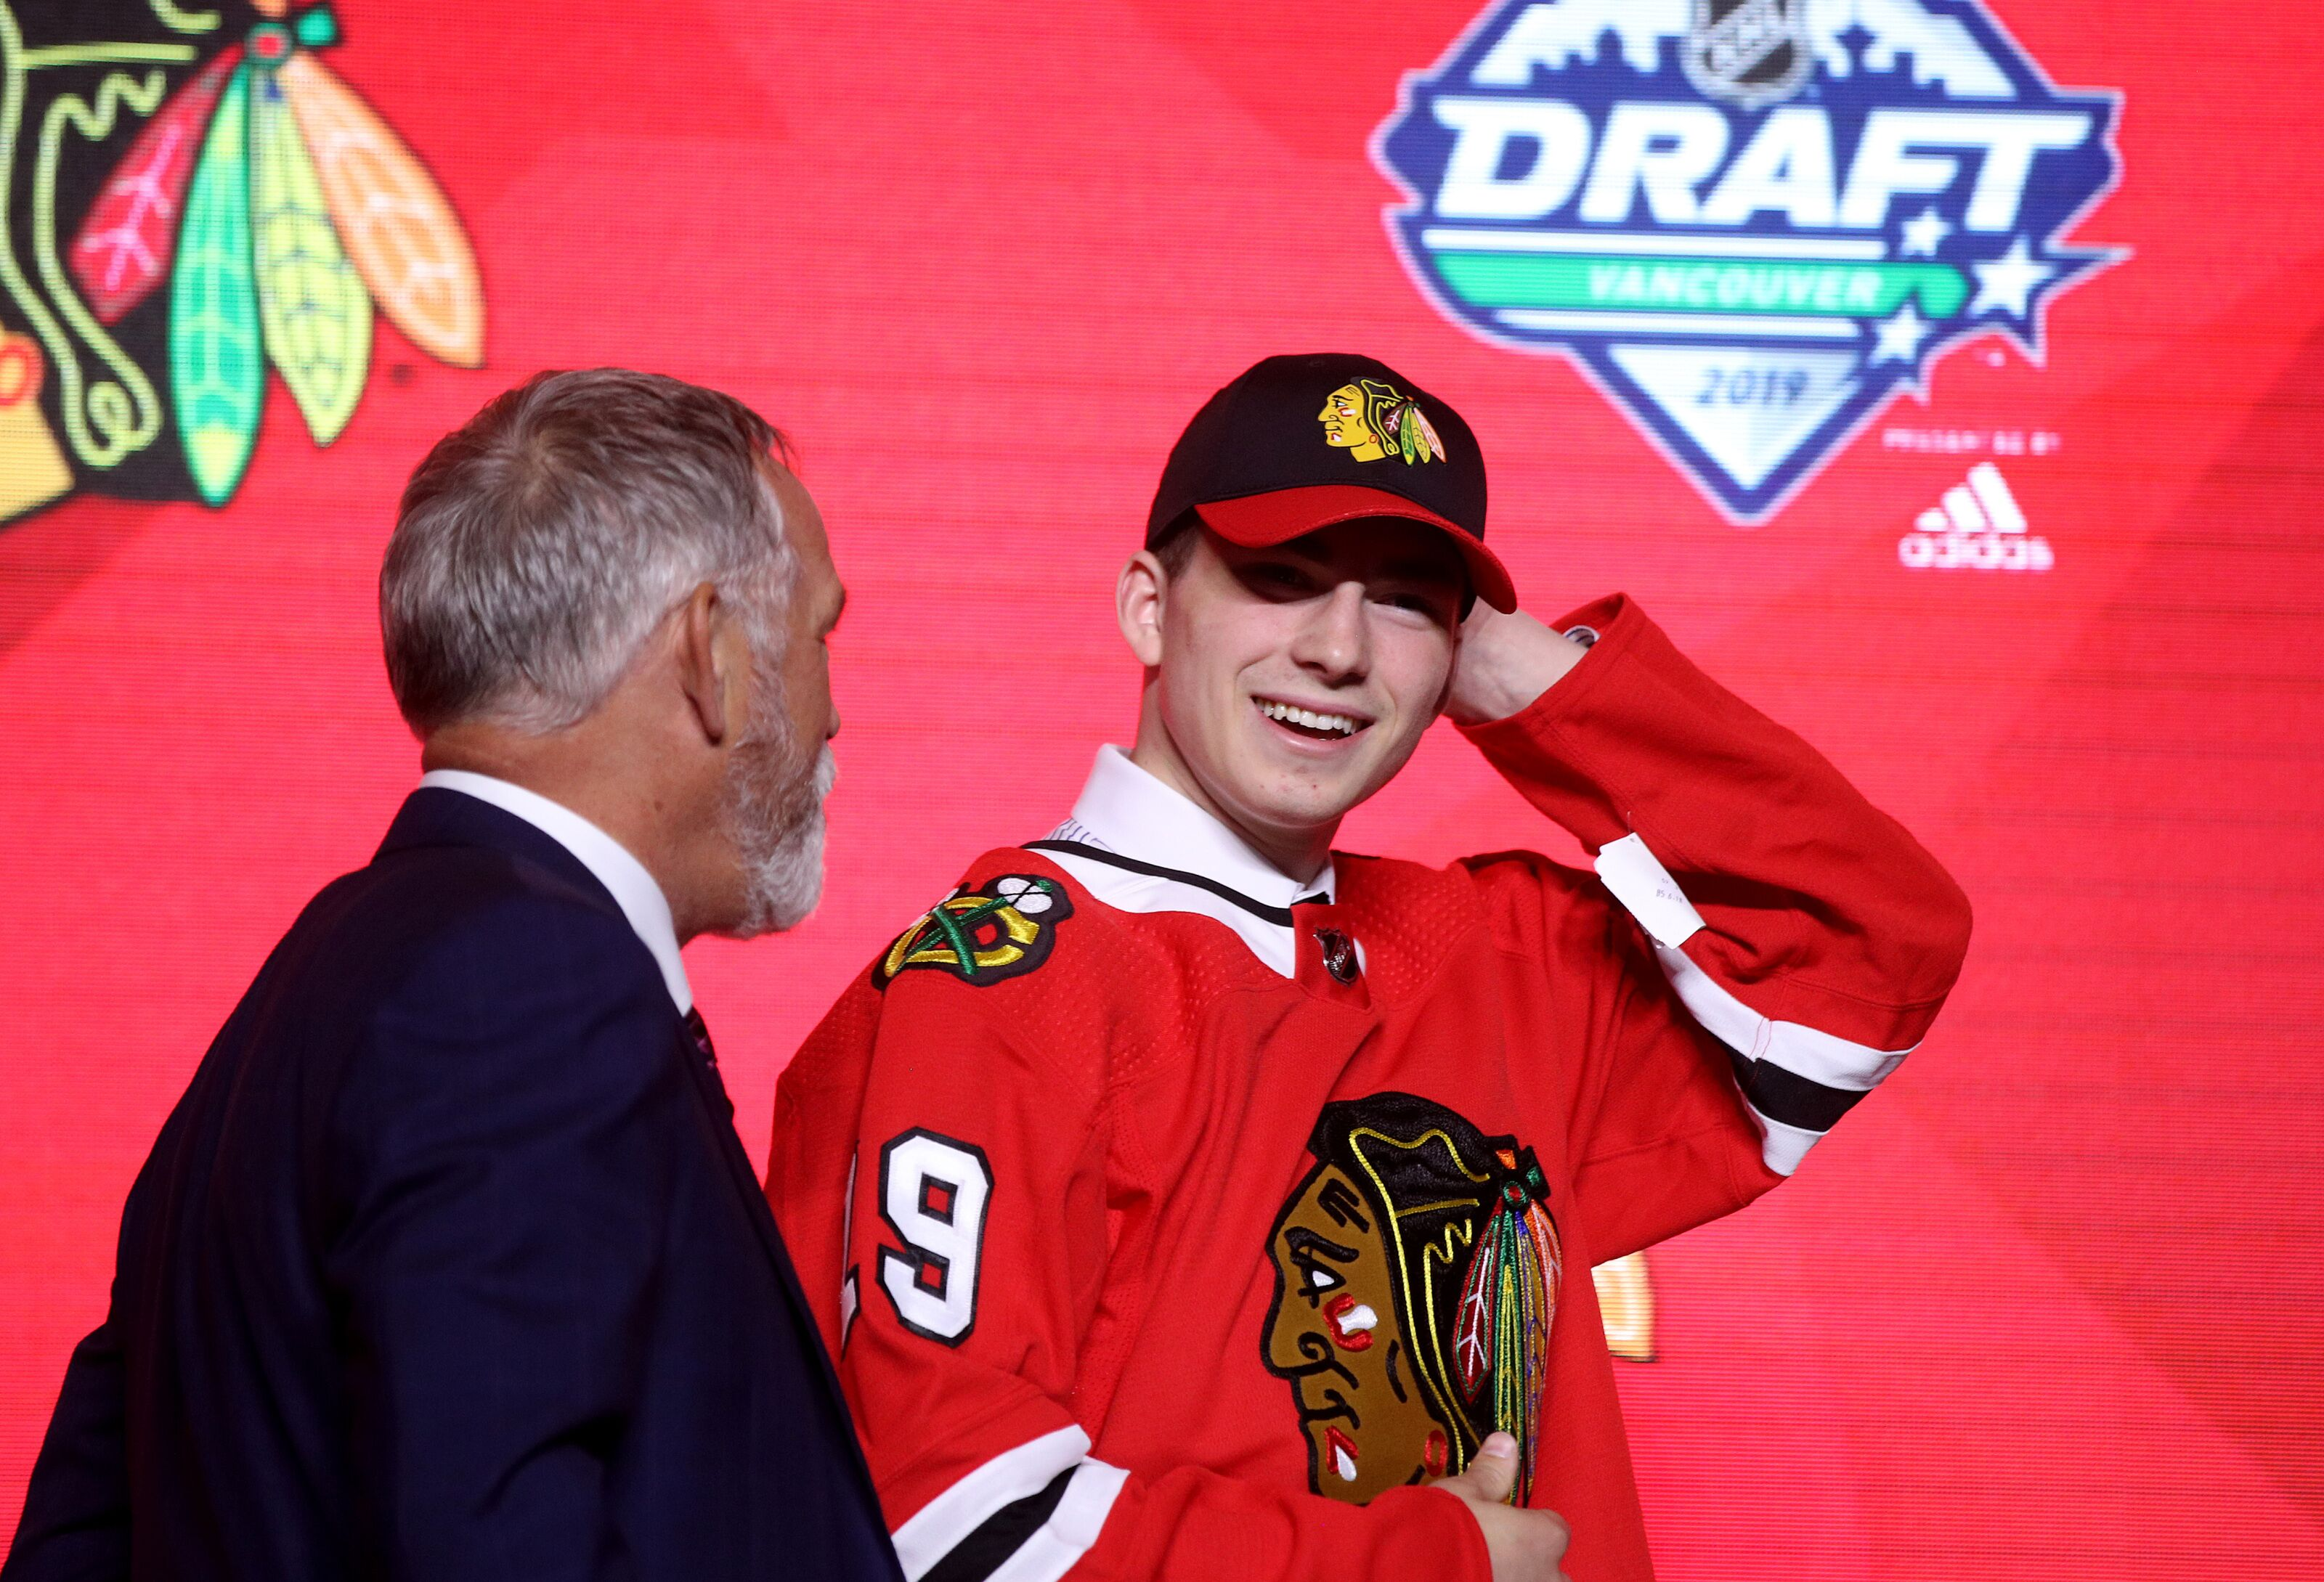 Chicago Blackhawks: Lose in Kirby Dach's NHL debut